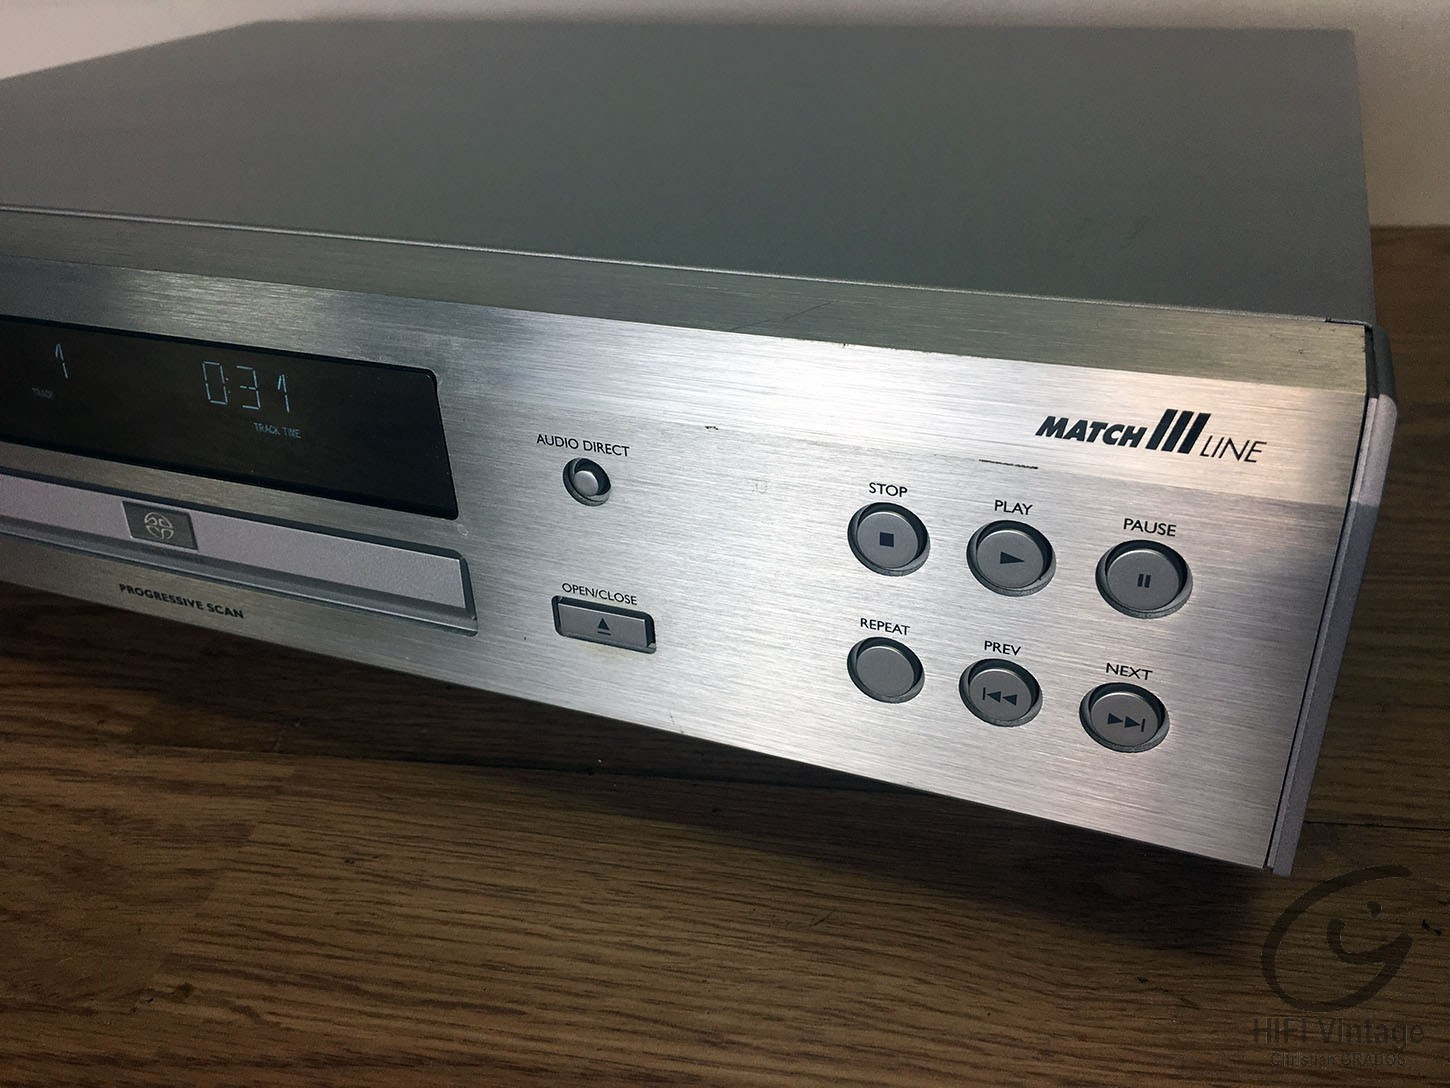 PHILIPS DVD-963SA